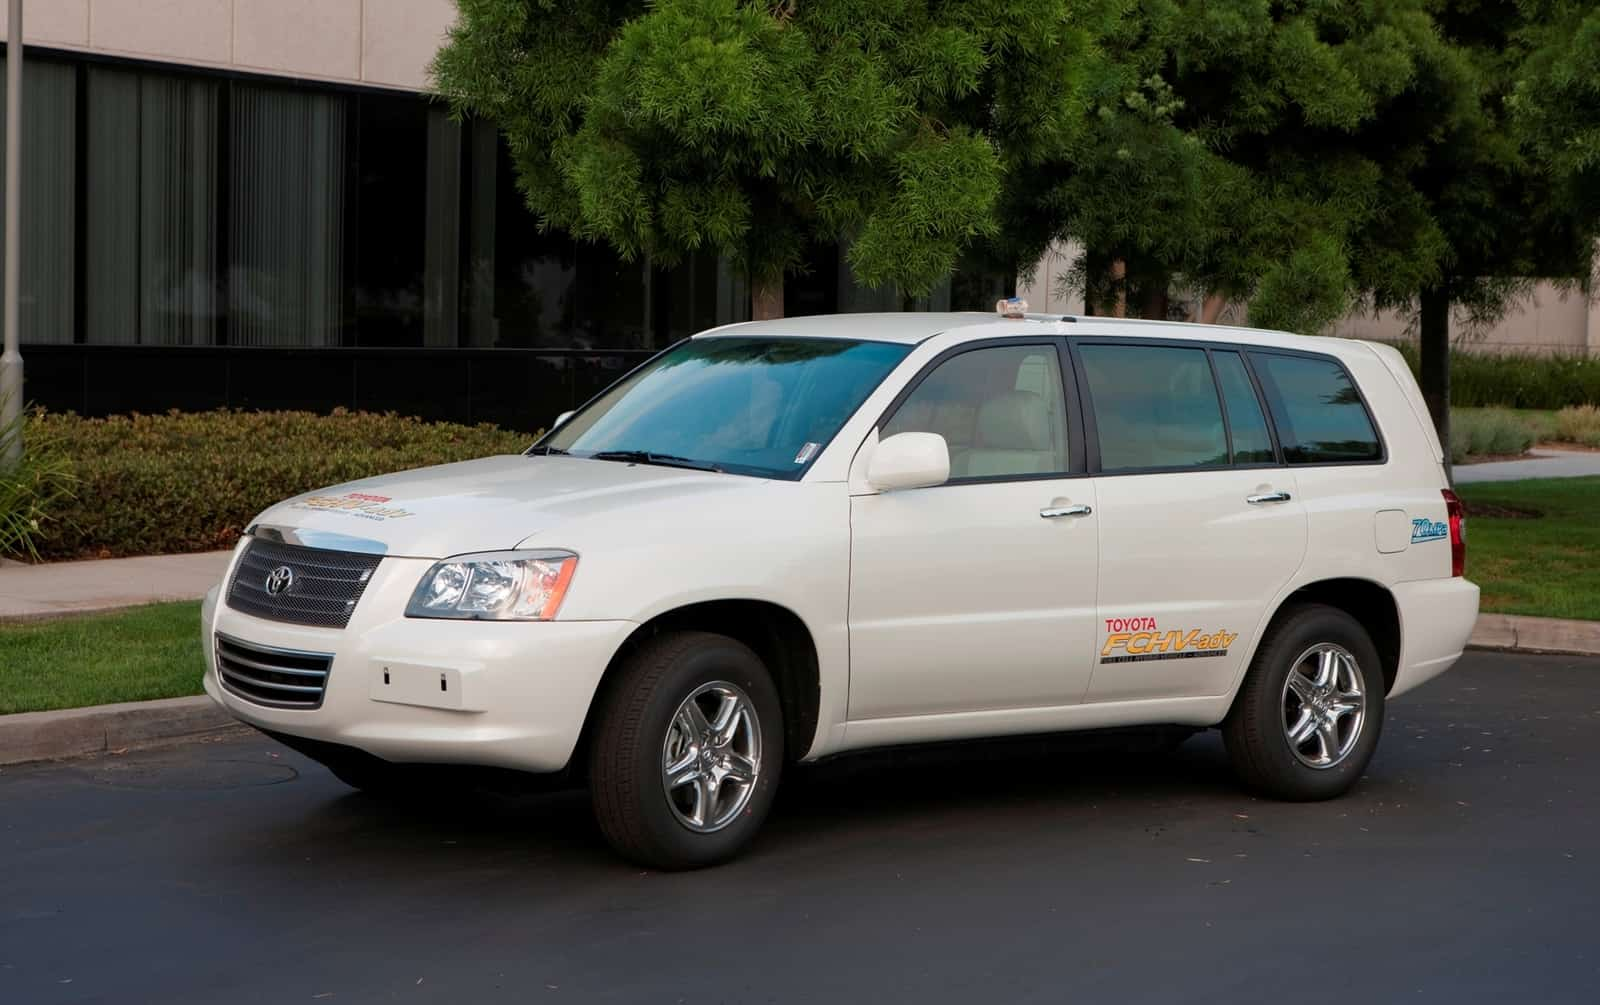 Toyota 2010 Fuel Cell Hybrid Vehicle